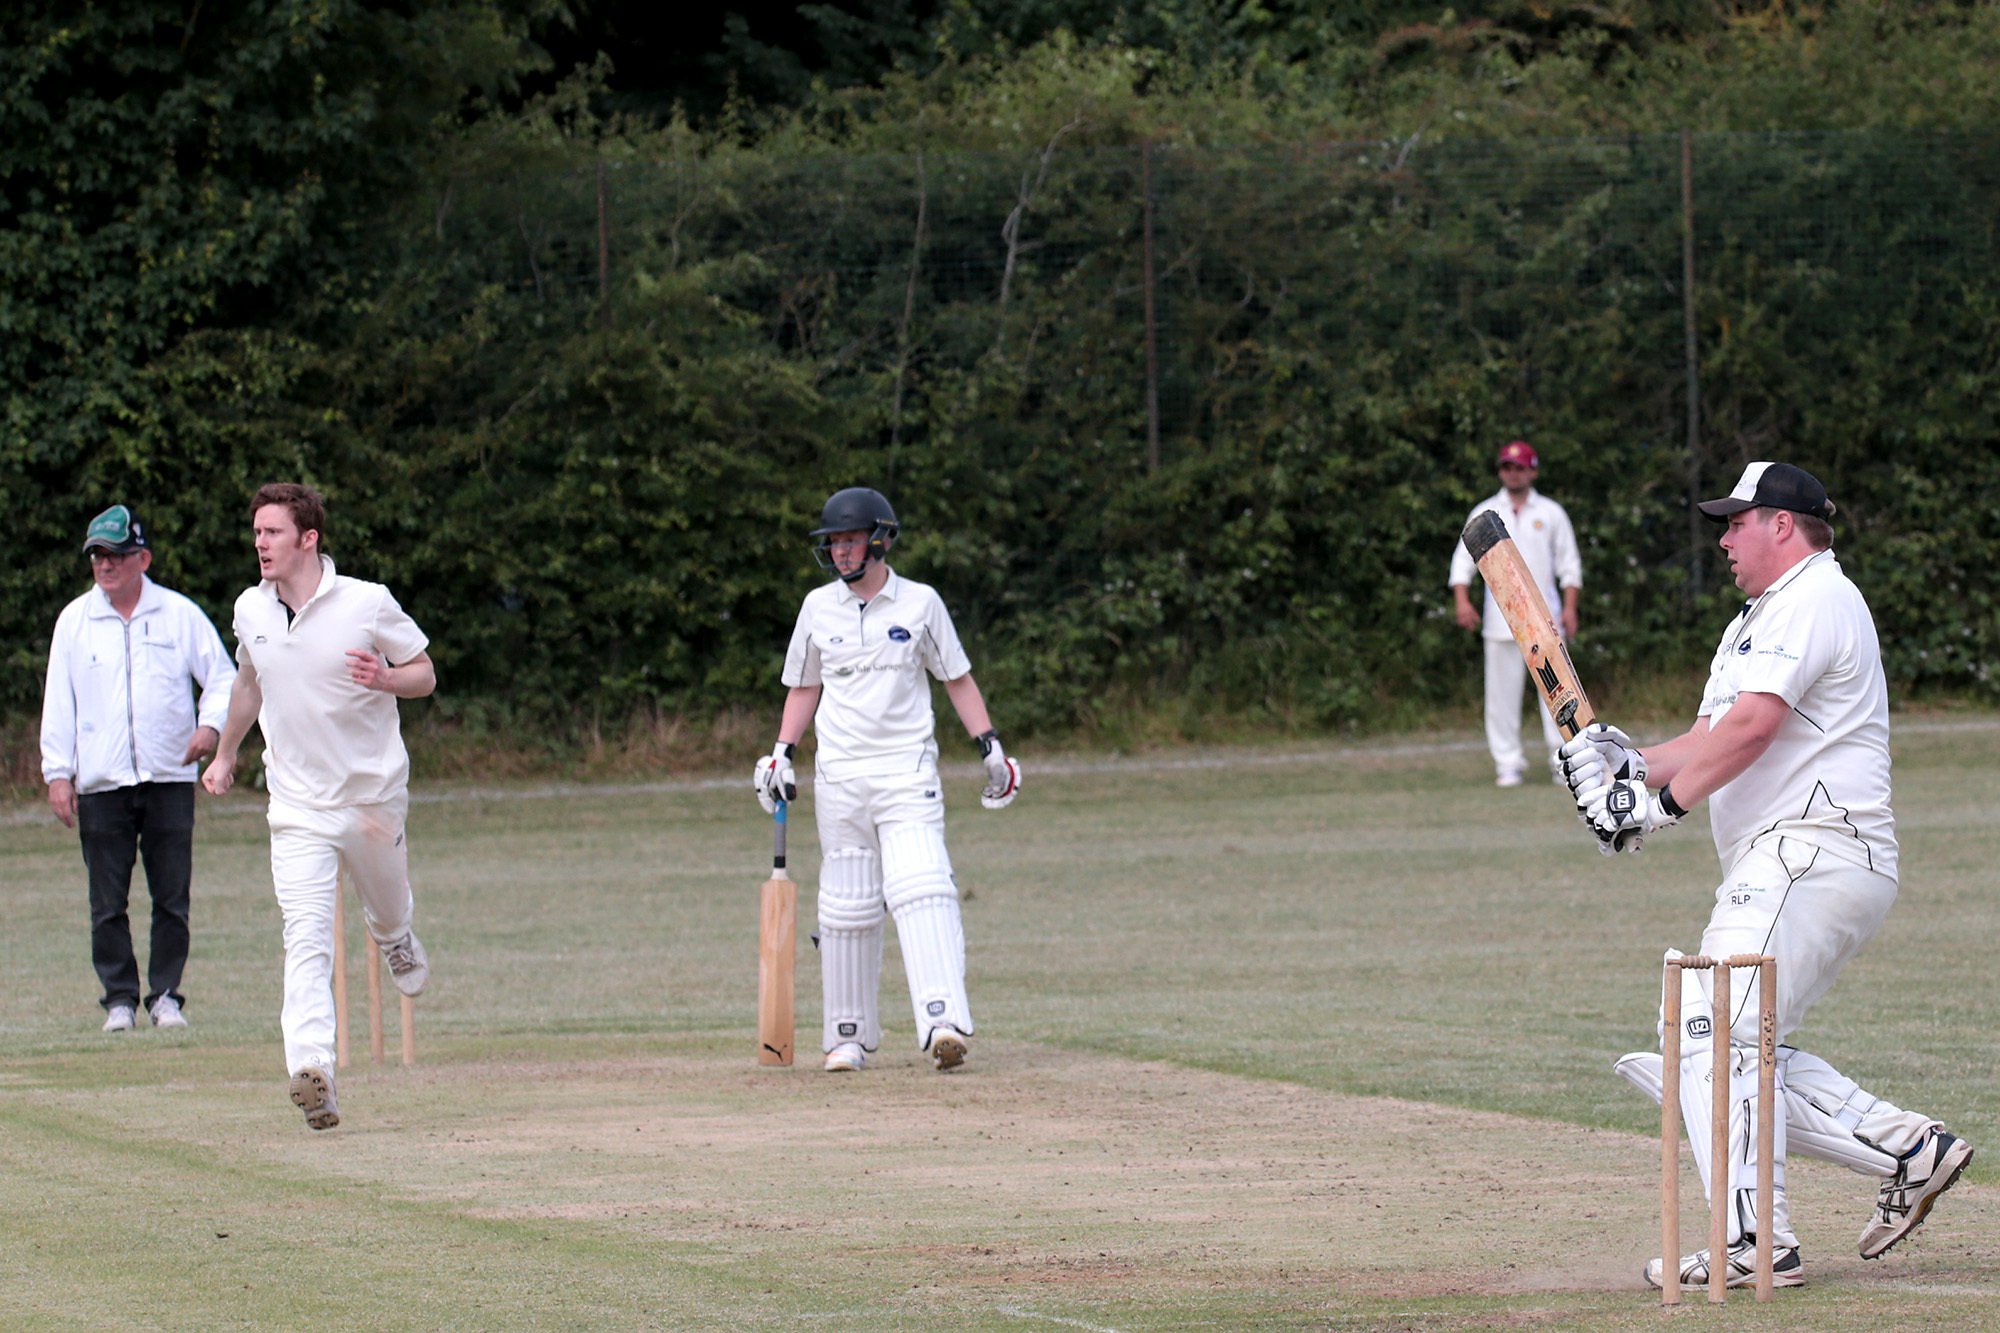 Ranulph Leigh-Pemberton is caught at mid wicket as he tries to pile on the runs at the end of the Uffington innings during their OCA match at Ducklington on Saturday Picture: Ric Mellis